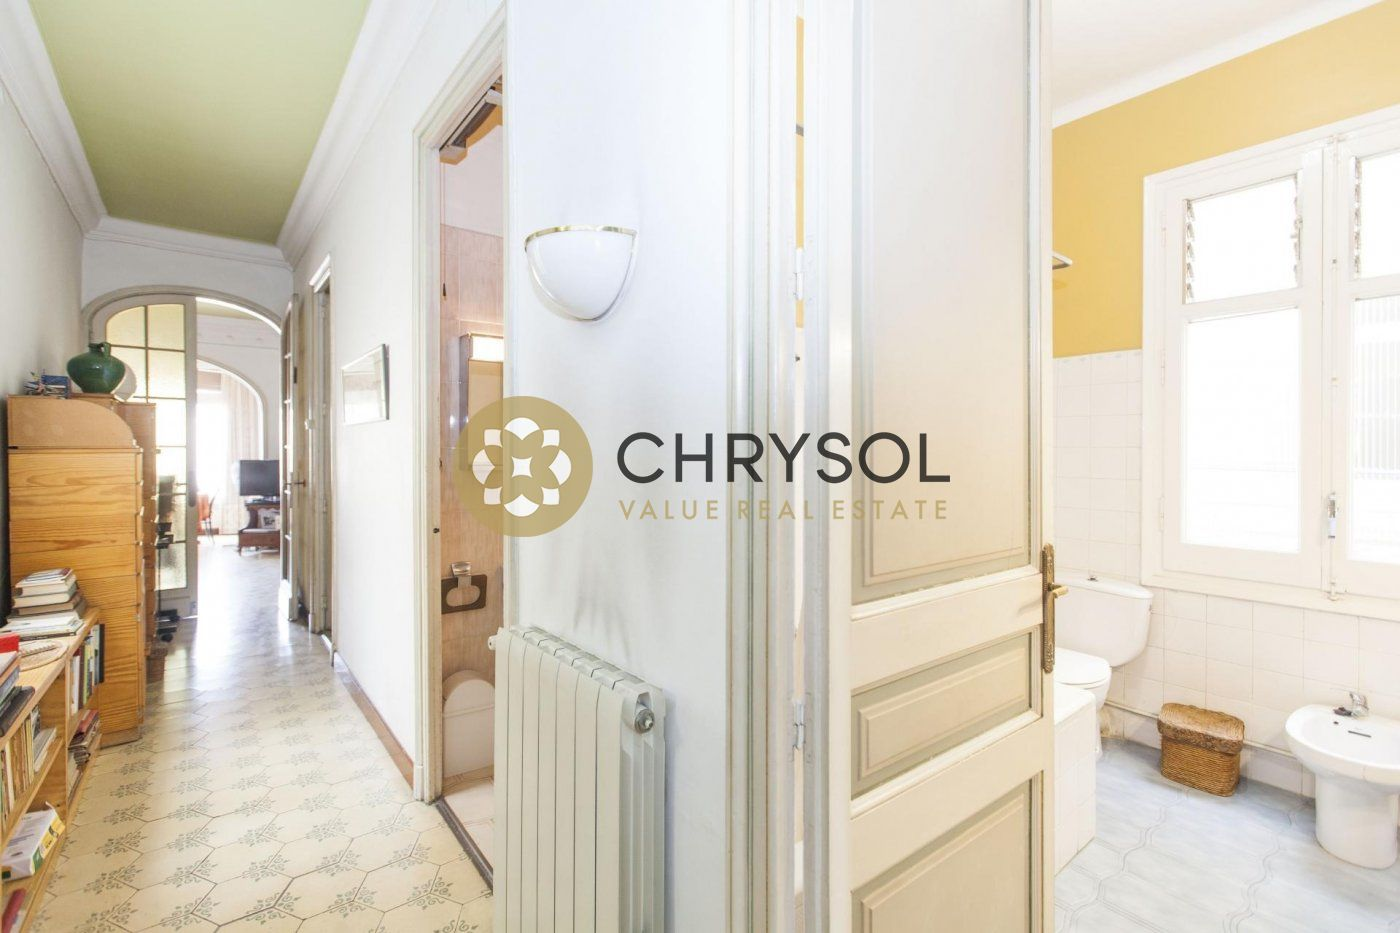 Photogallery - 21 - Chrysol Value